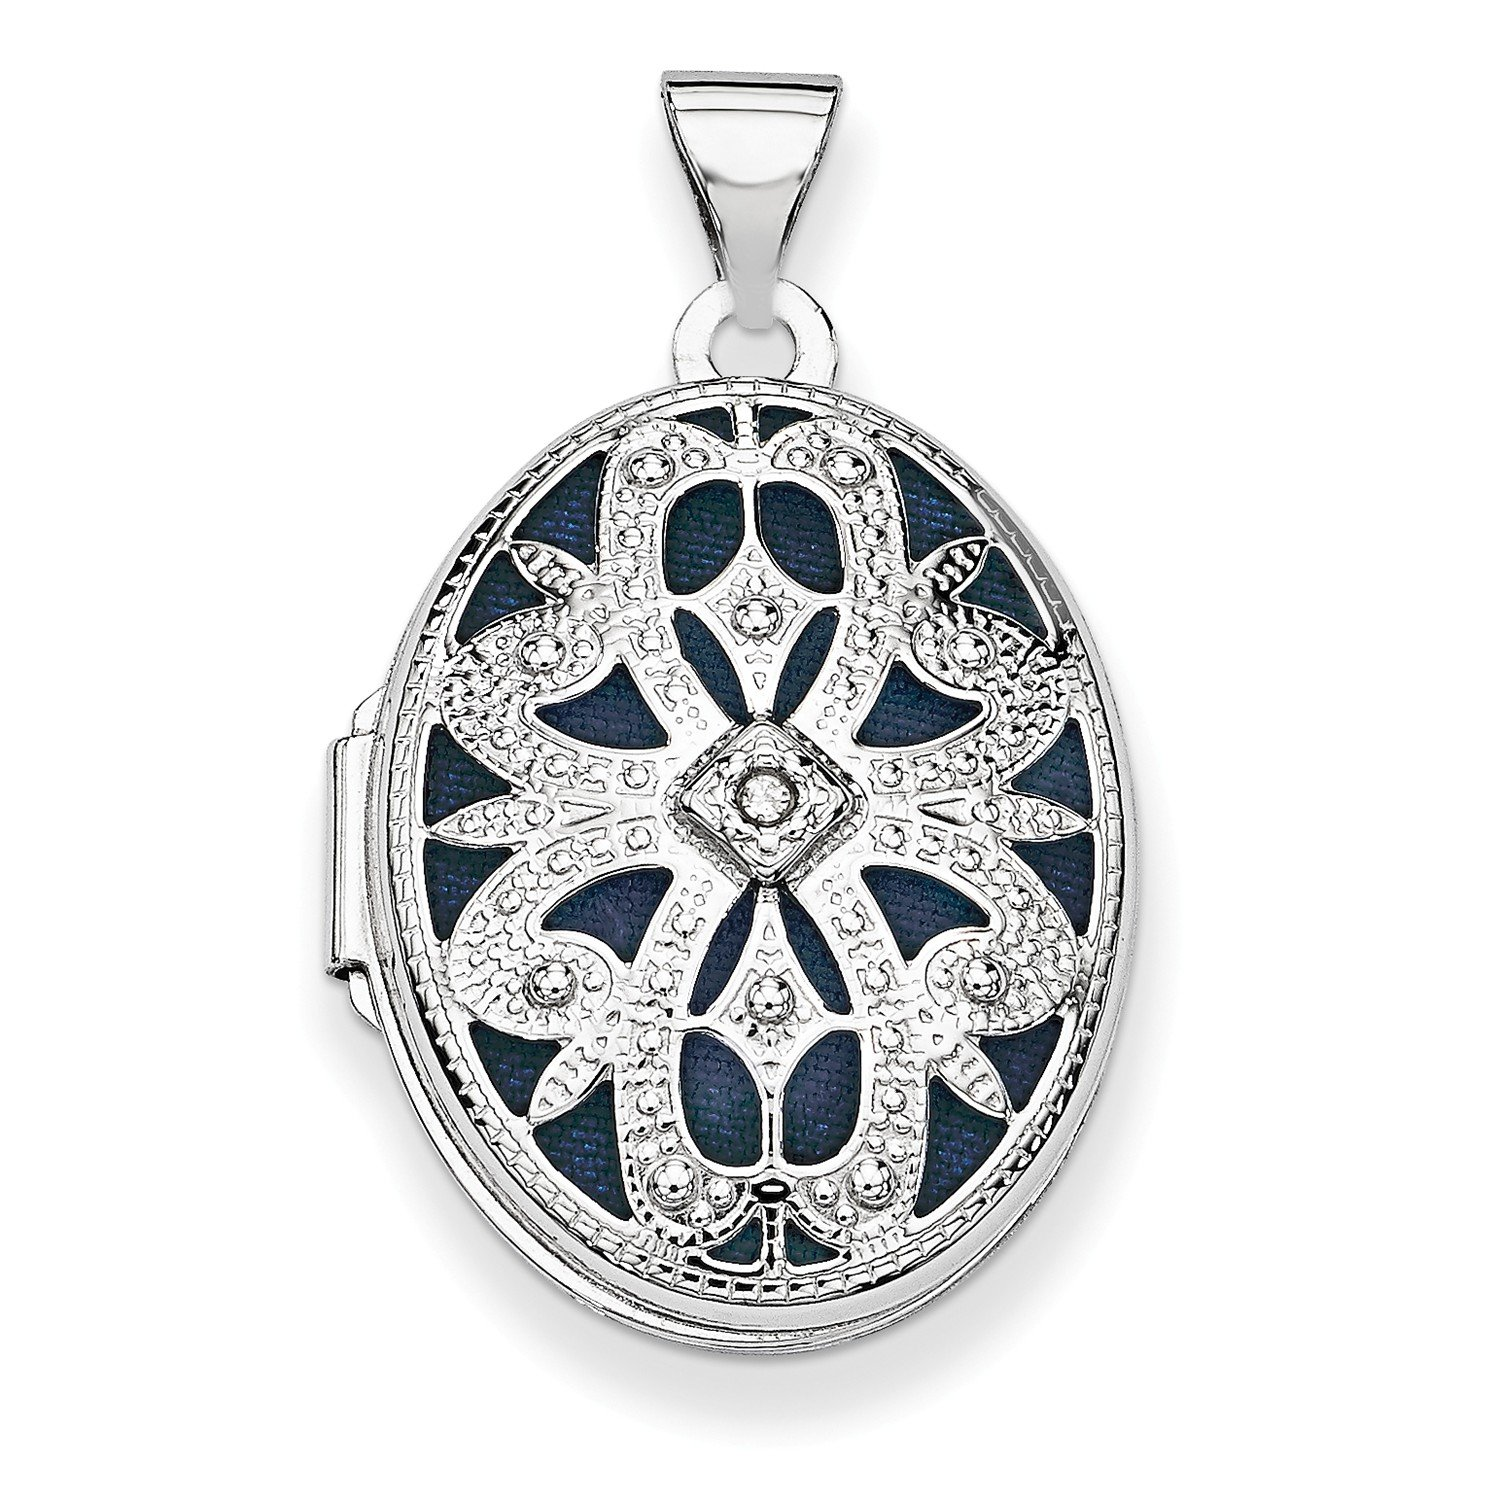 Roy Rose Jewelry 14K White Gold 21mm Oval w/Diamond Vintage Locket 30x21mm by Roy Rose Jewelry